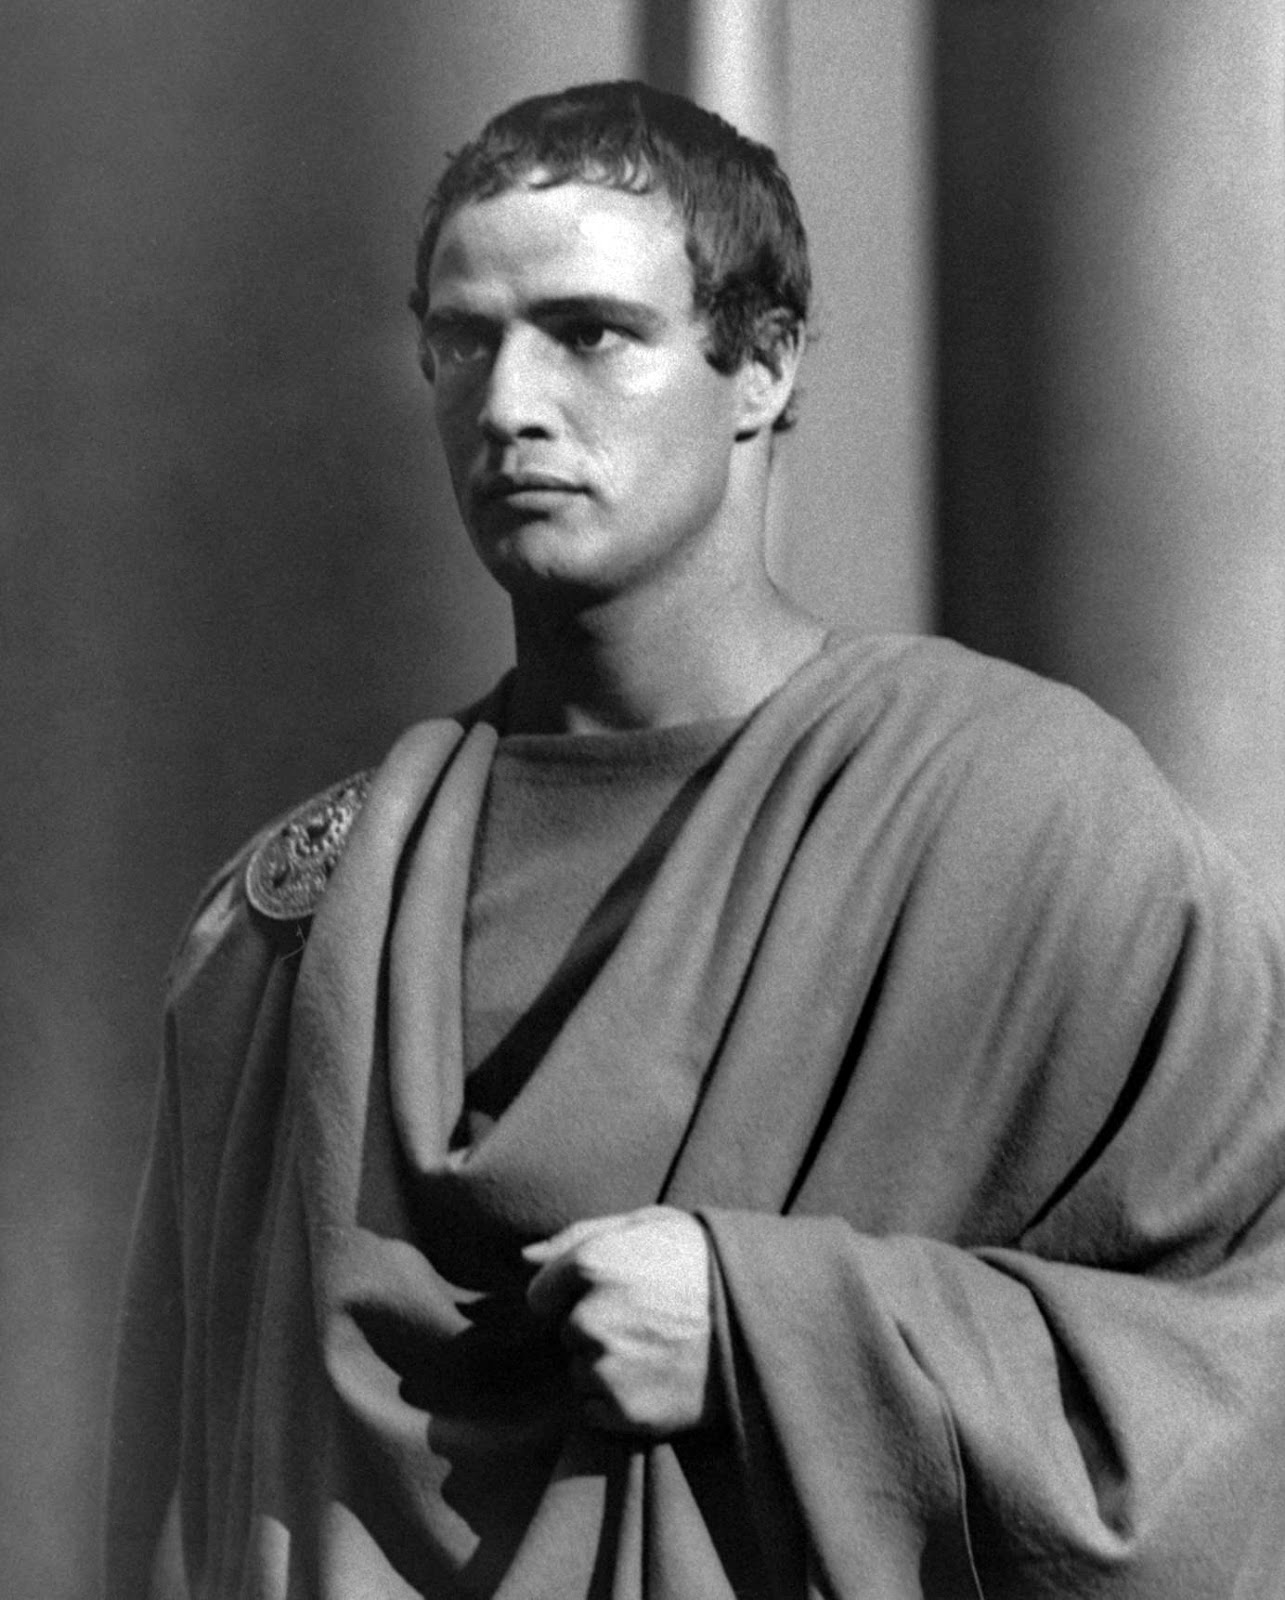 analysis of cassius from julius caesar Cassius and brutus, both longtime intimates of caesar and each other, converse cassius tells brutus that he has seemed distant lately brutus replies that he has.